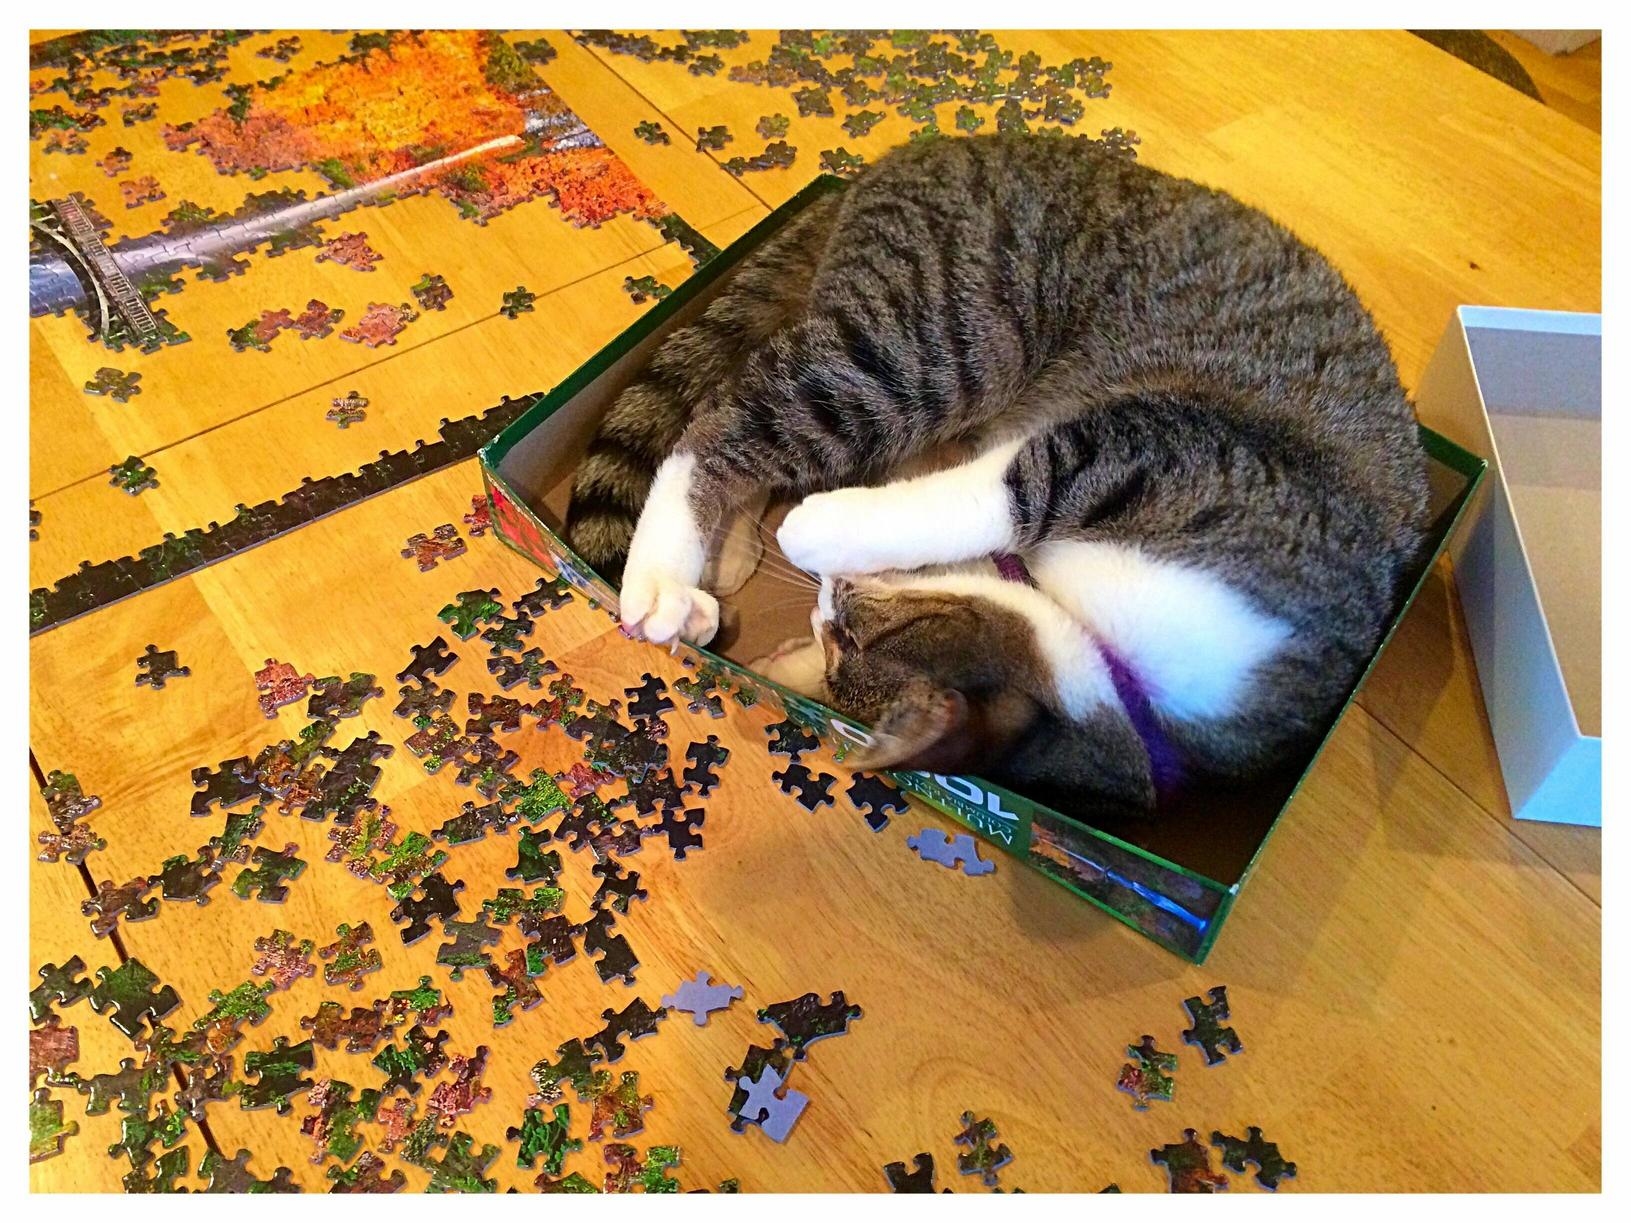 Puzzle helper kitty is not very helpful.